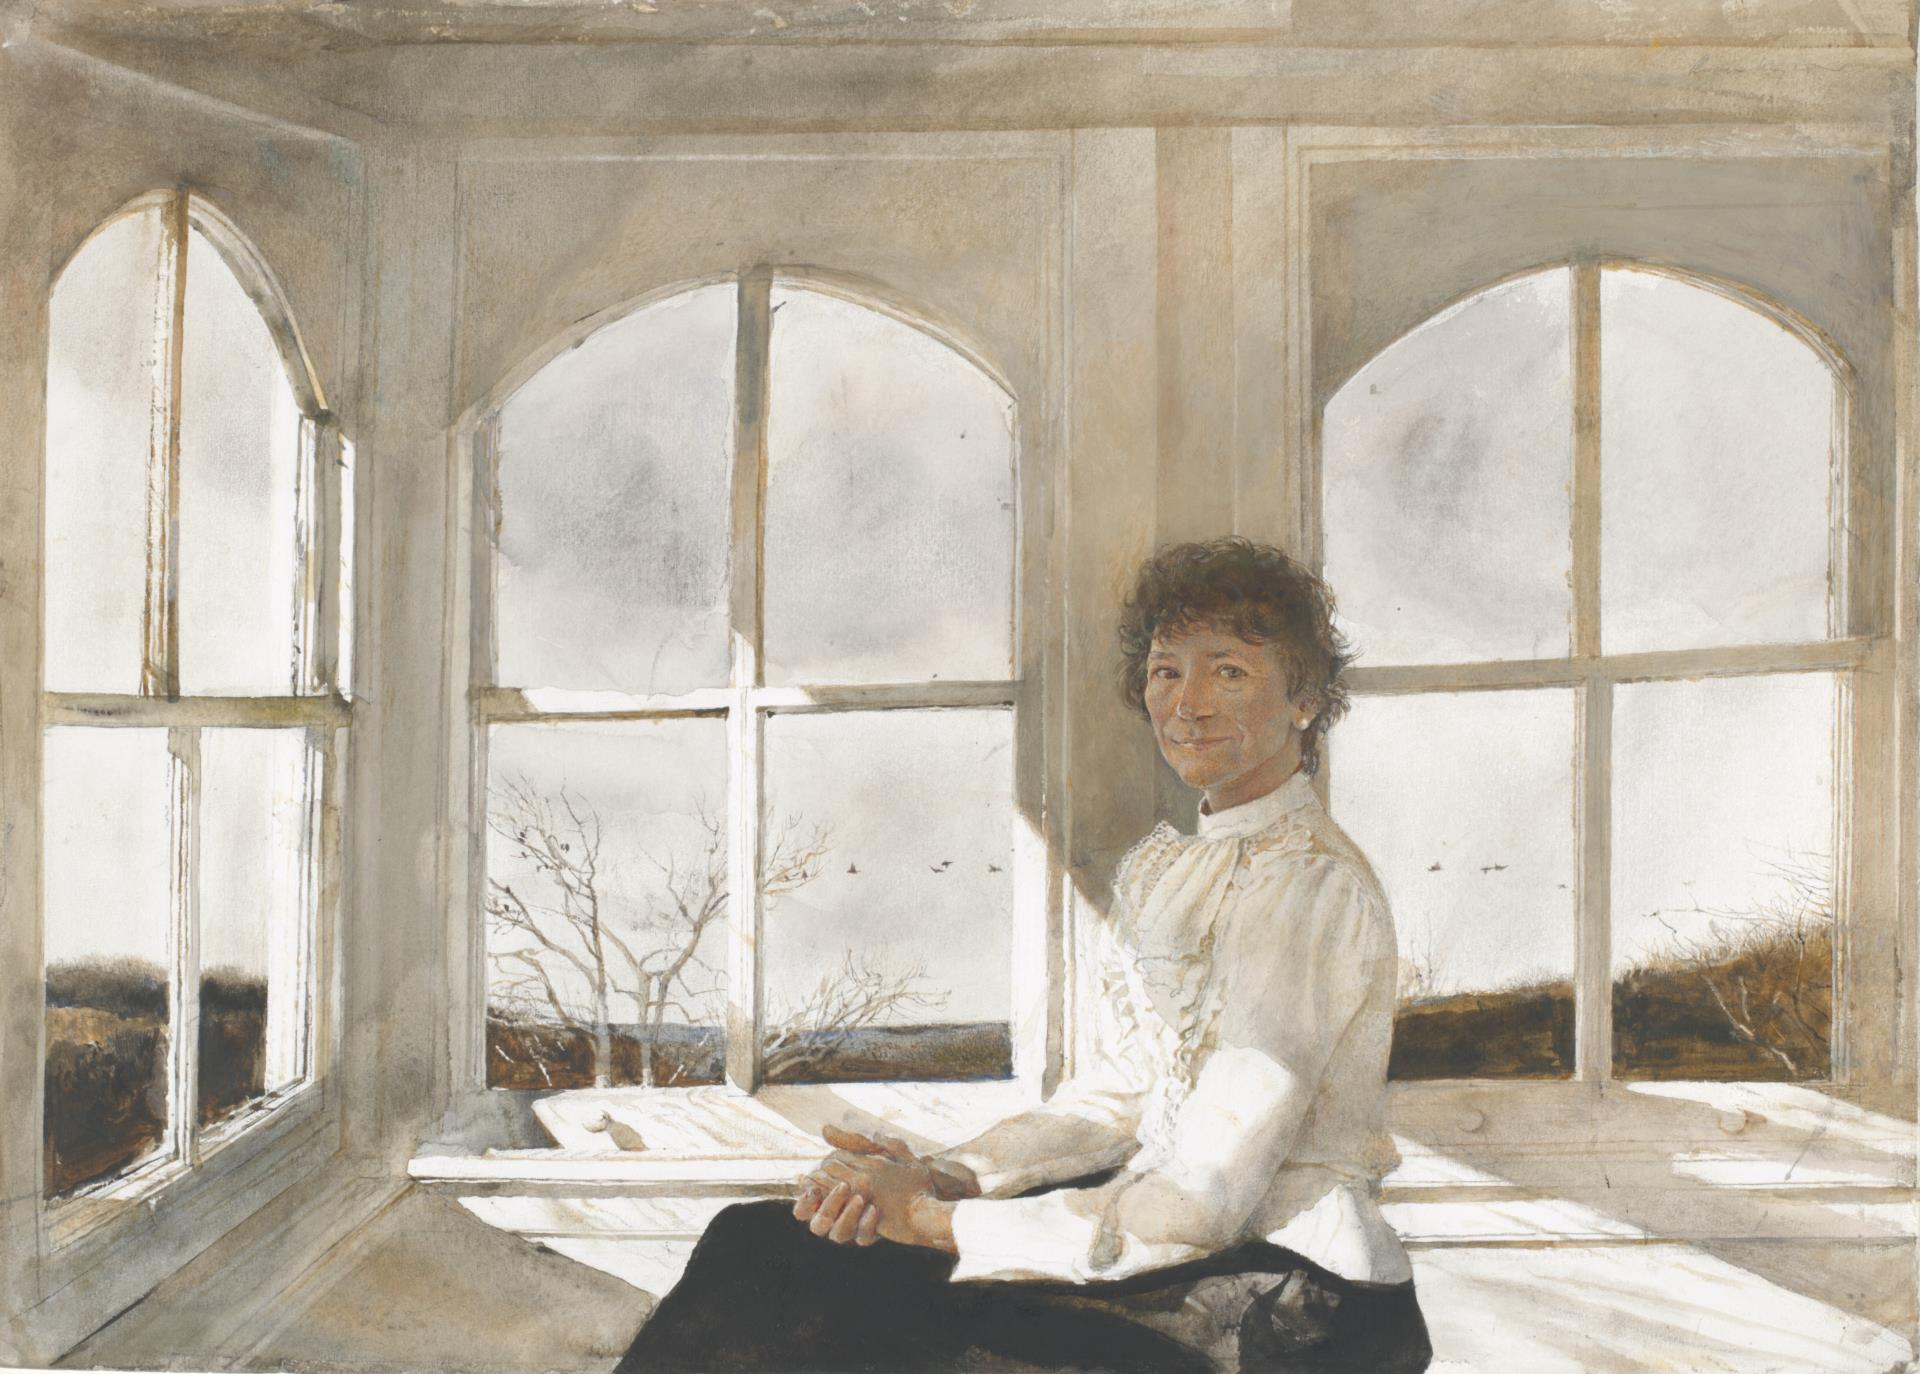 andrew wyeth essay Download thesis statement on andrew wyeth in our database or order an original thesis paper that will be written by one of our staff writers and delivered according.